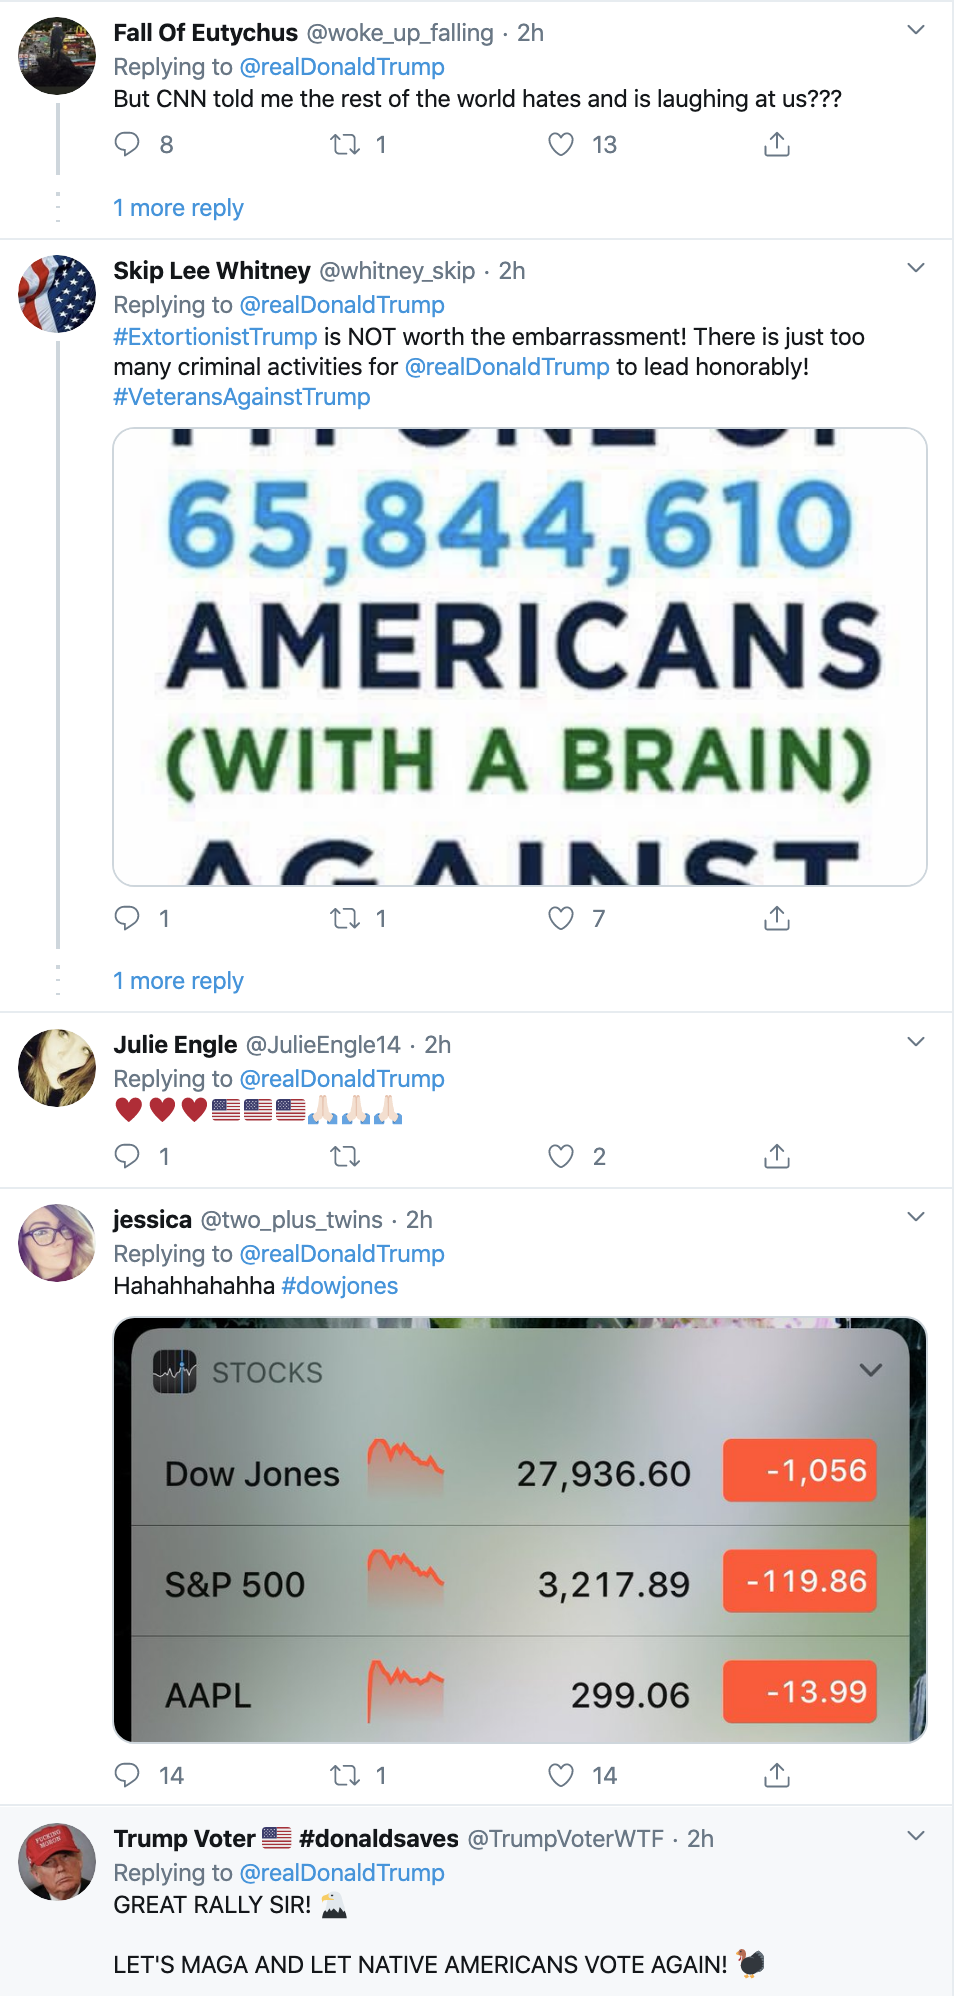 Screen-Shot-2020-02-24-at-2.24.19-PM Trump Tweets India Video Montage - Gets Mocked Instantly Corruption Donald Trump Featured Politics Top Stories